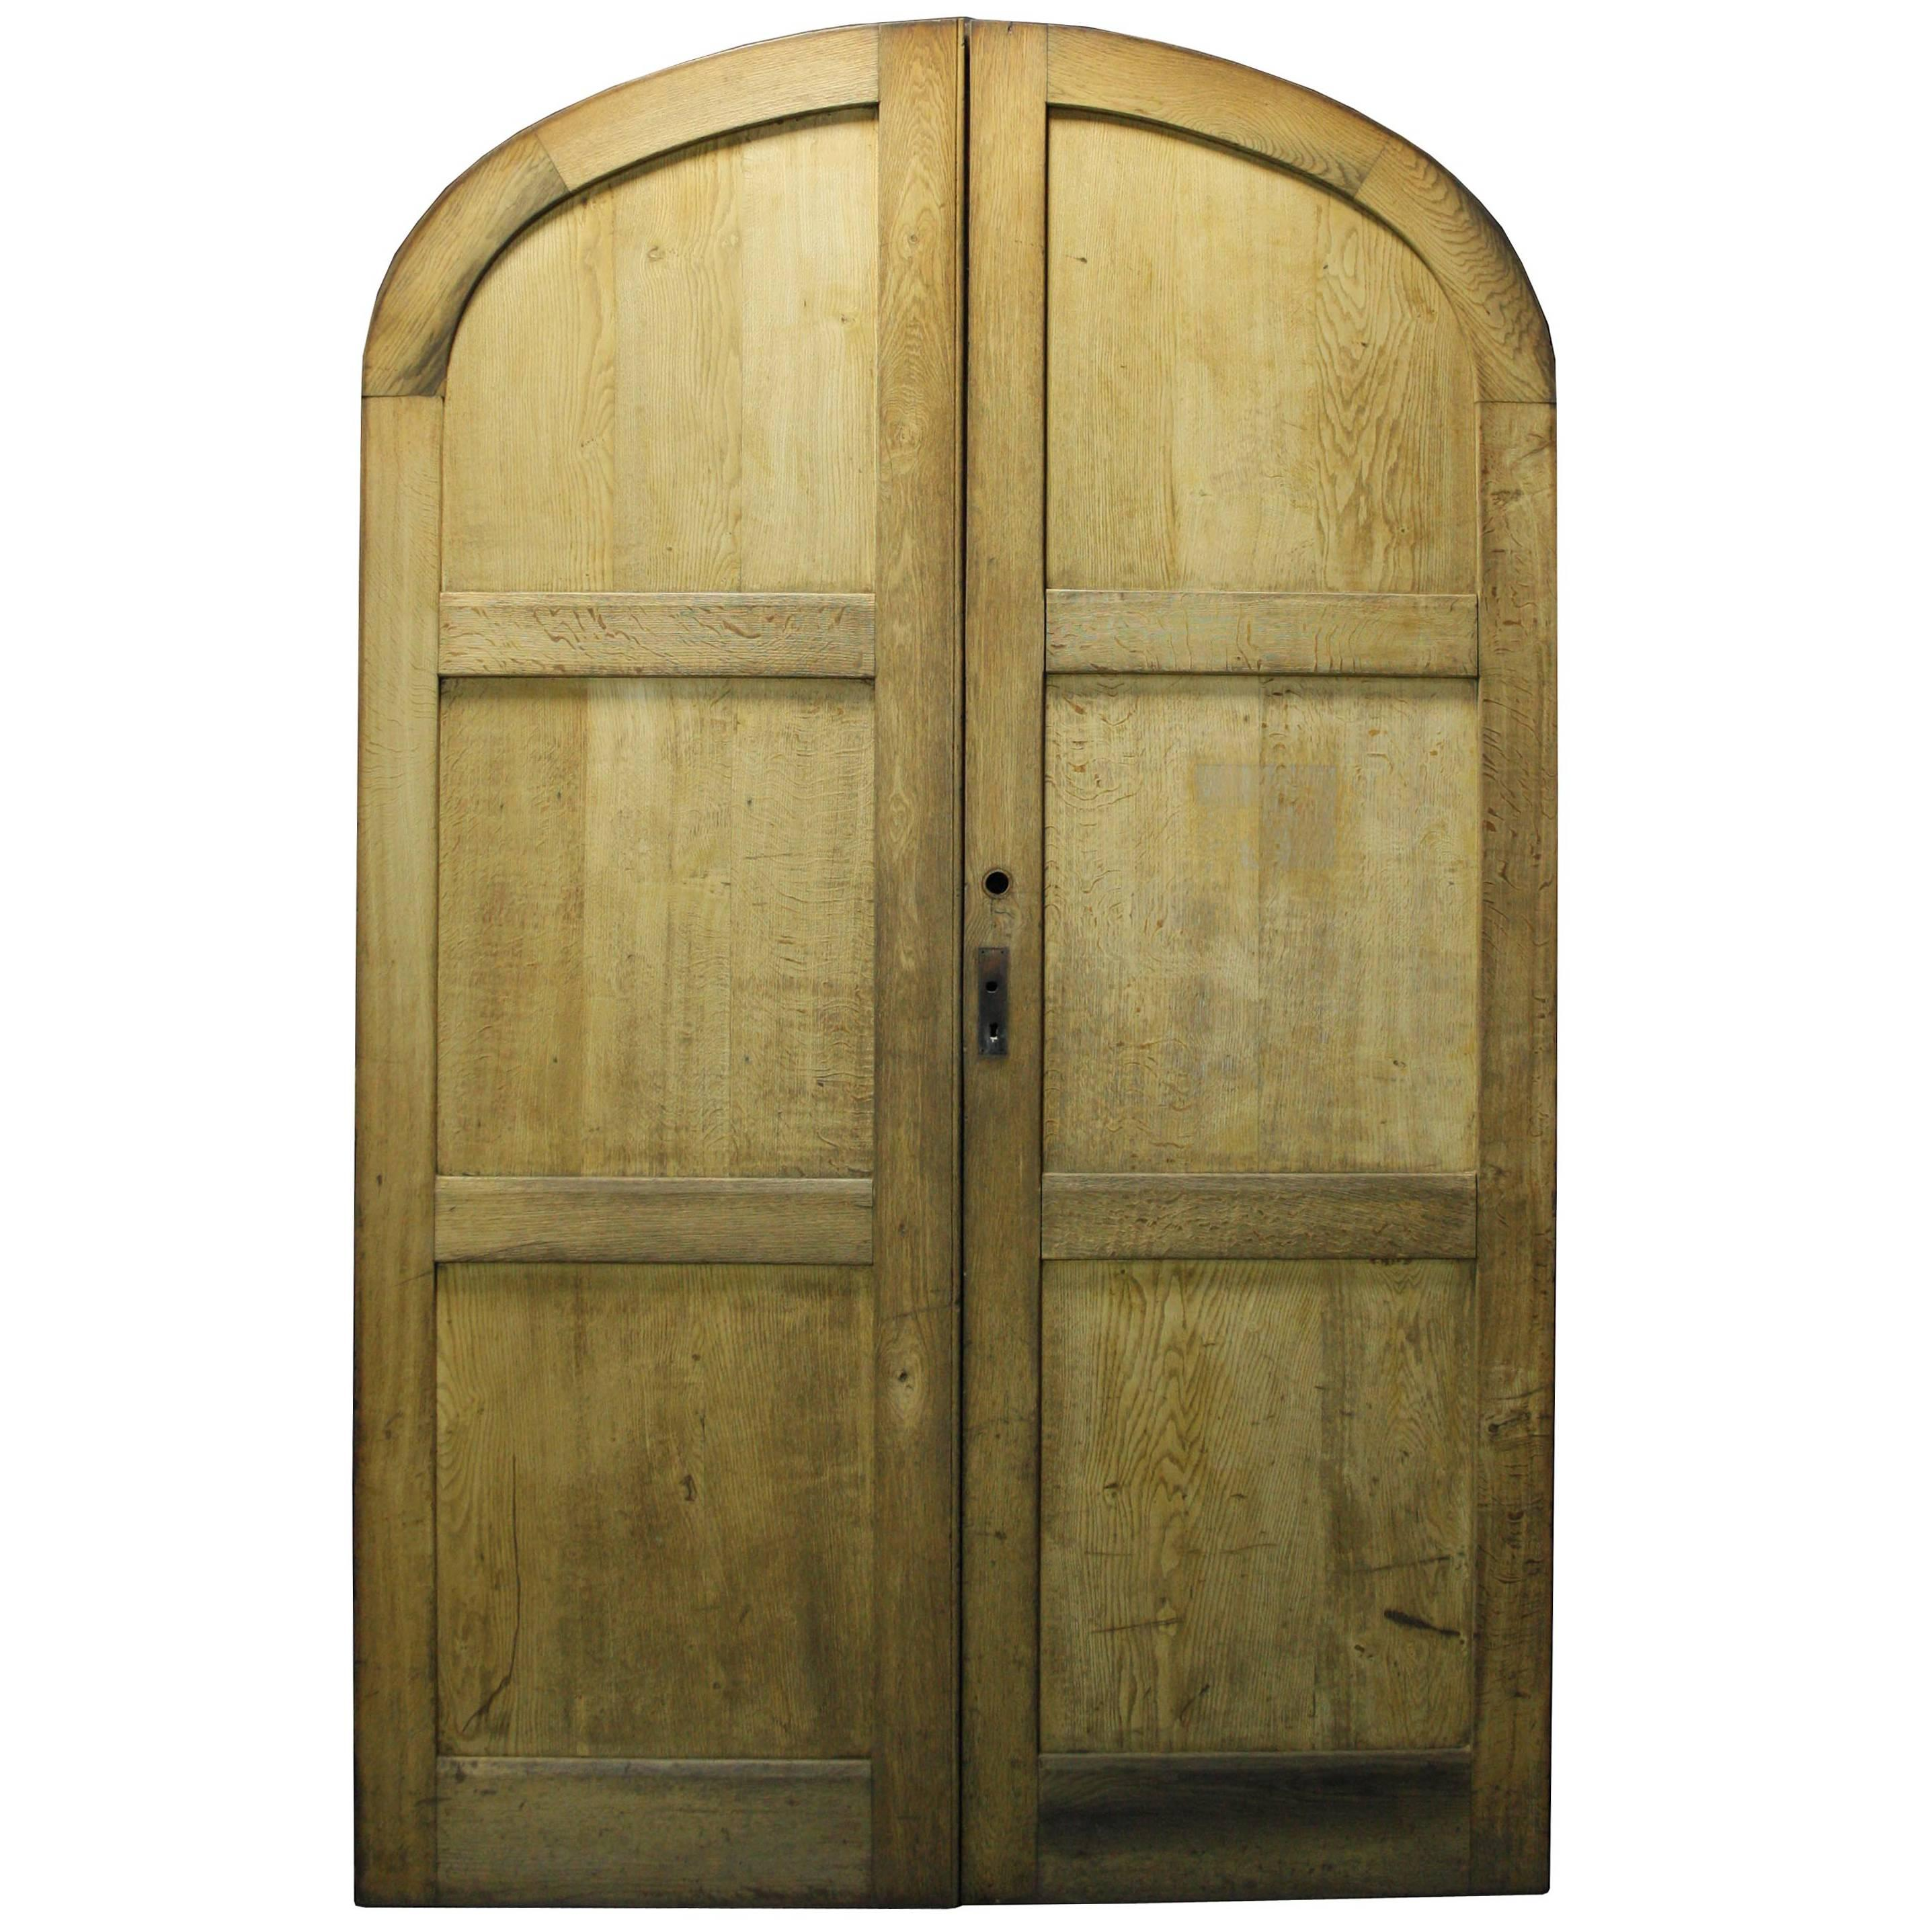 Pair of 1920s Exterior Arched Oak Double Doors For Sale  sc 1 st  1stDibs & Pair of 1920s Exterior Arched Oak Double Doors For Sale at 1stdibs